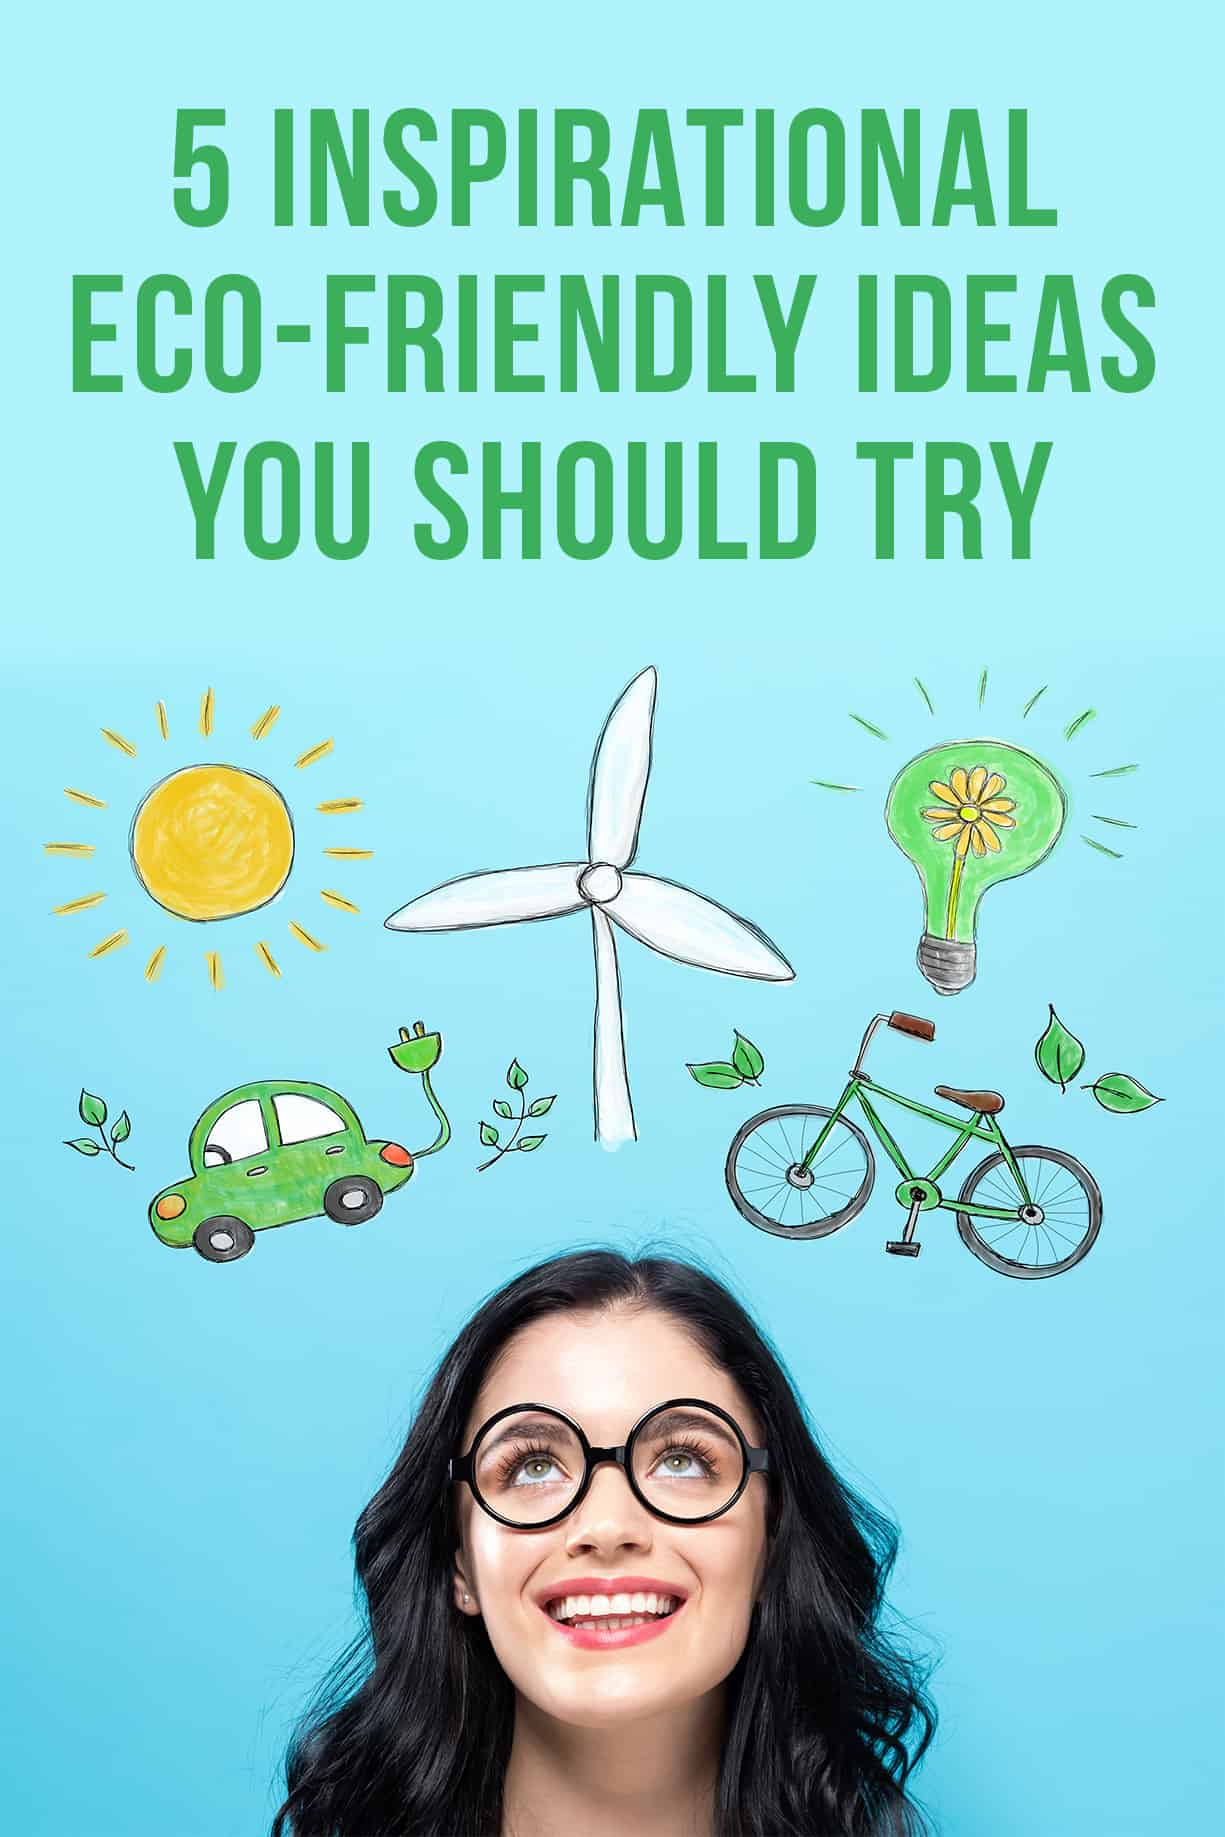 5 Inspirational Eco-Friendly Ideas You Should Try